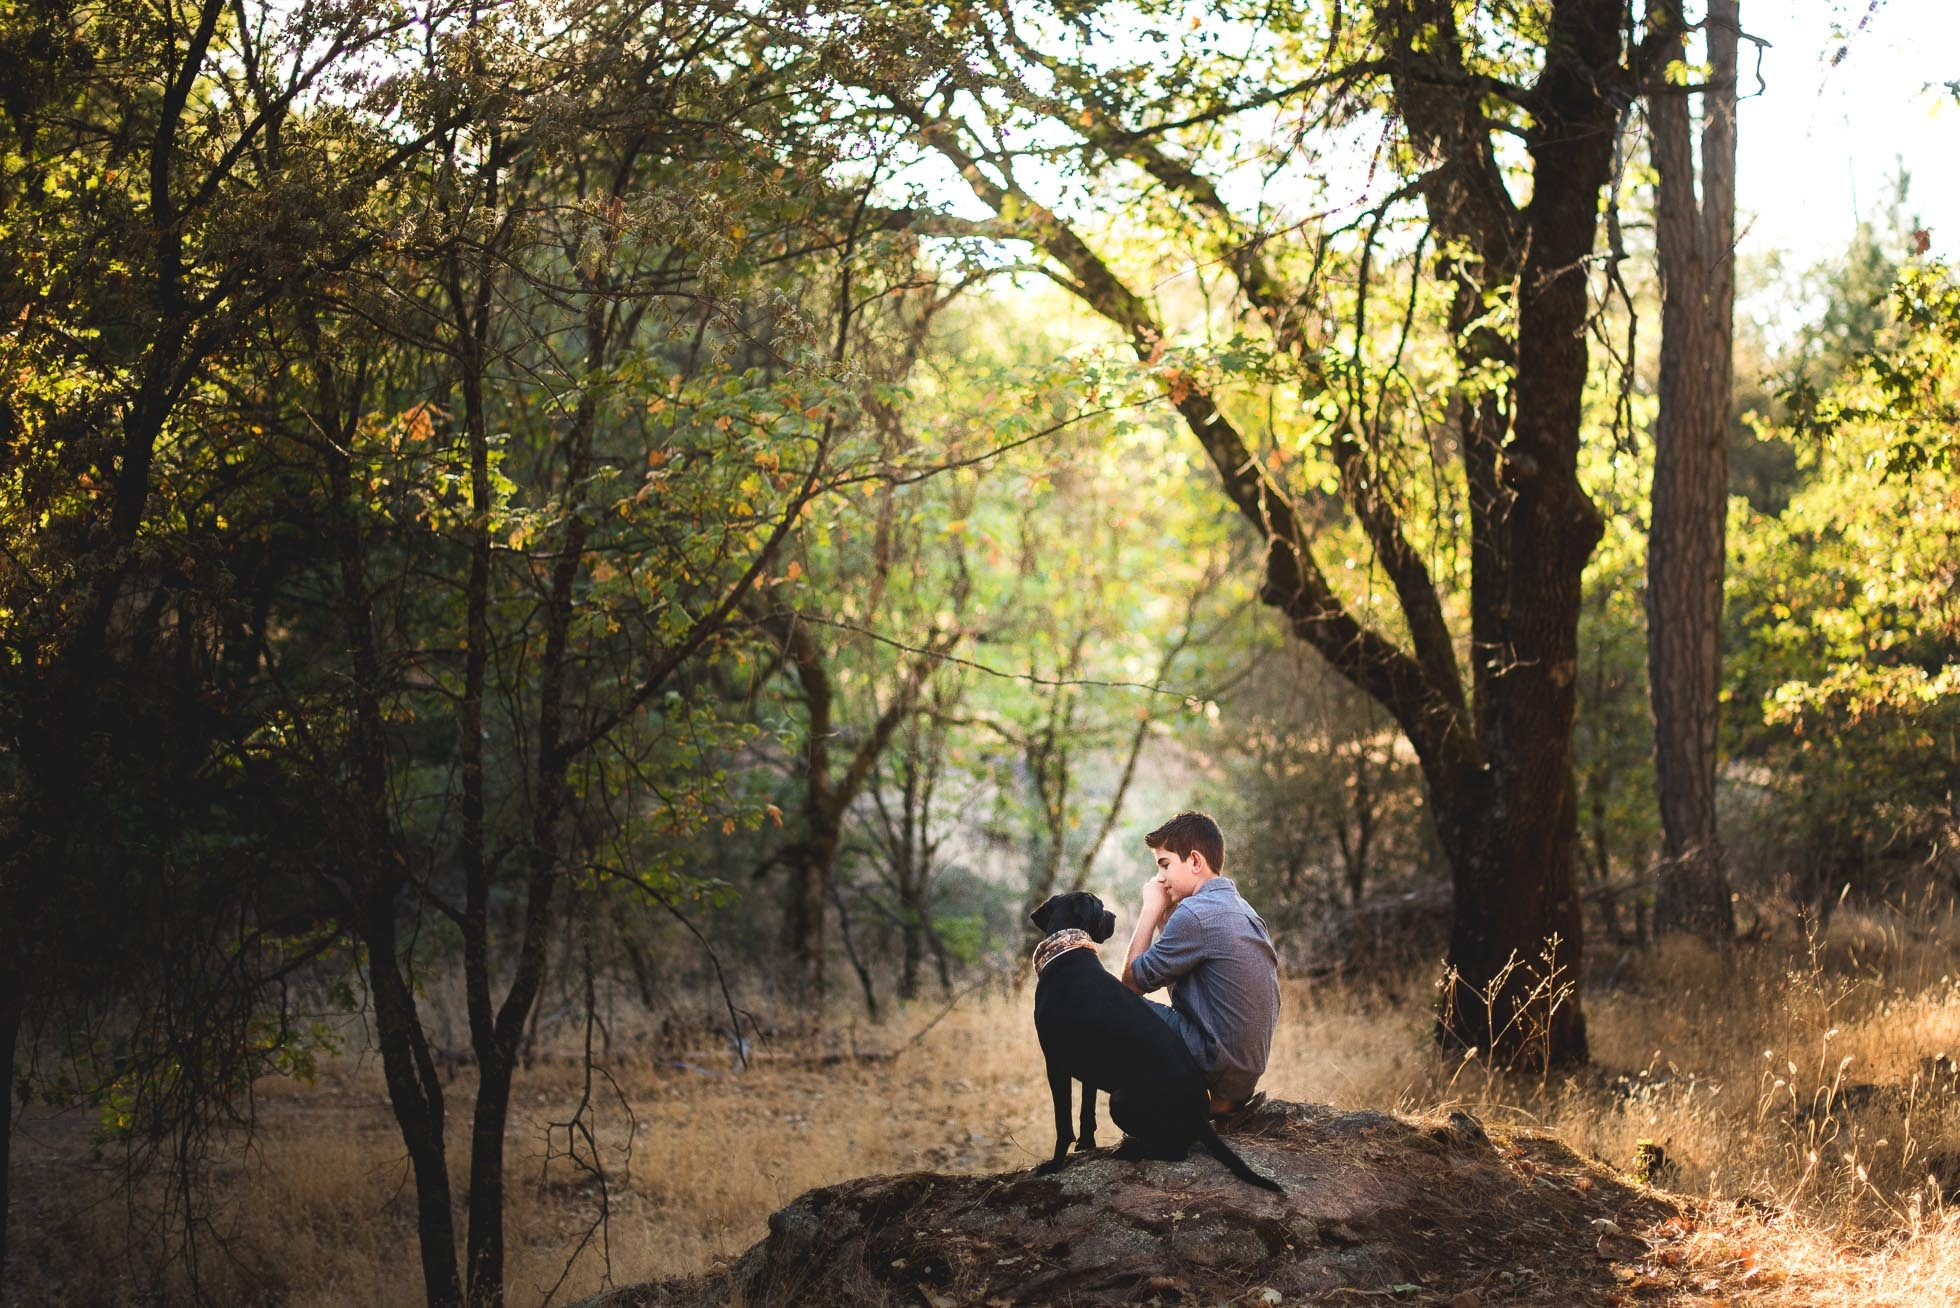 Boy and labrador retriever sitting on rock in forest